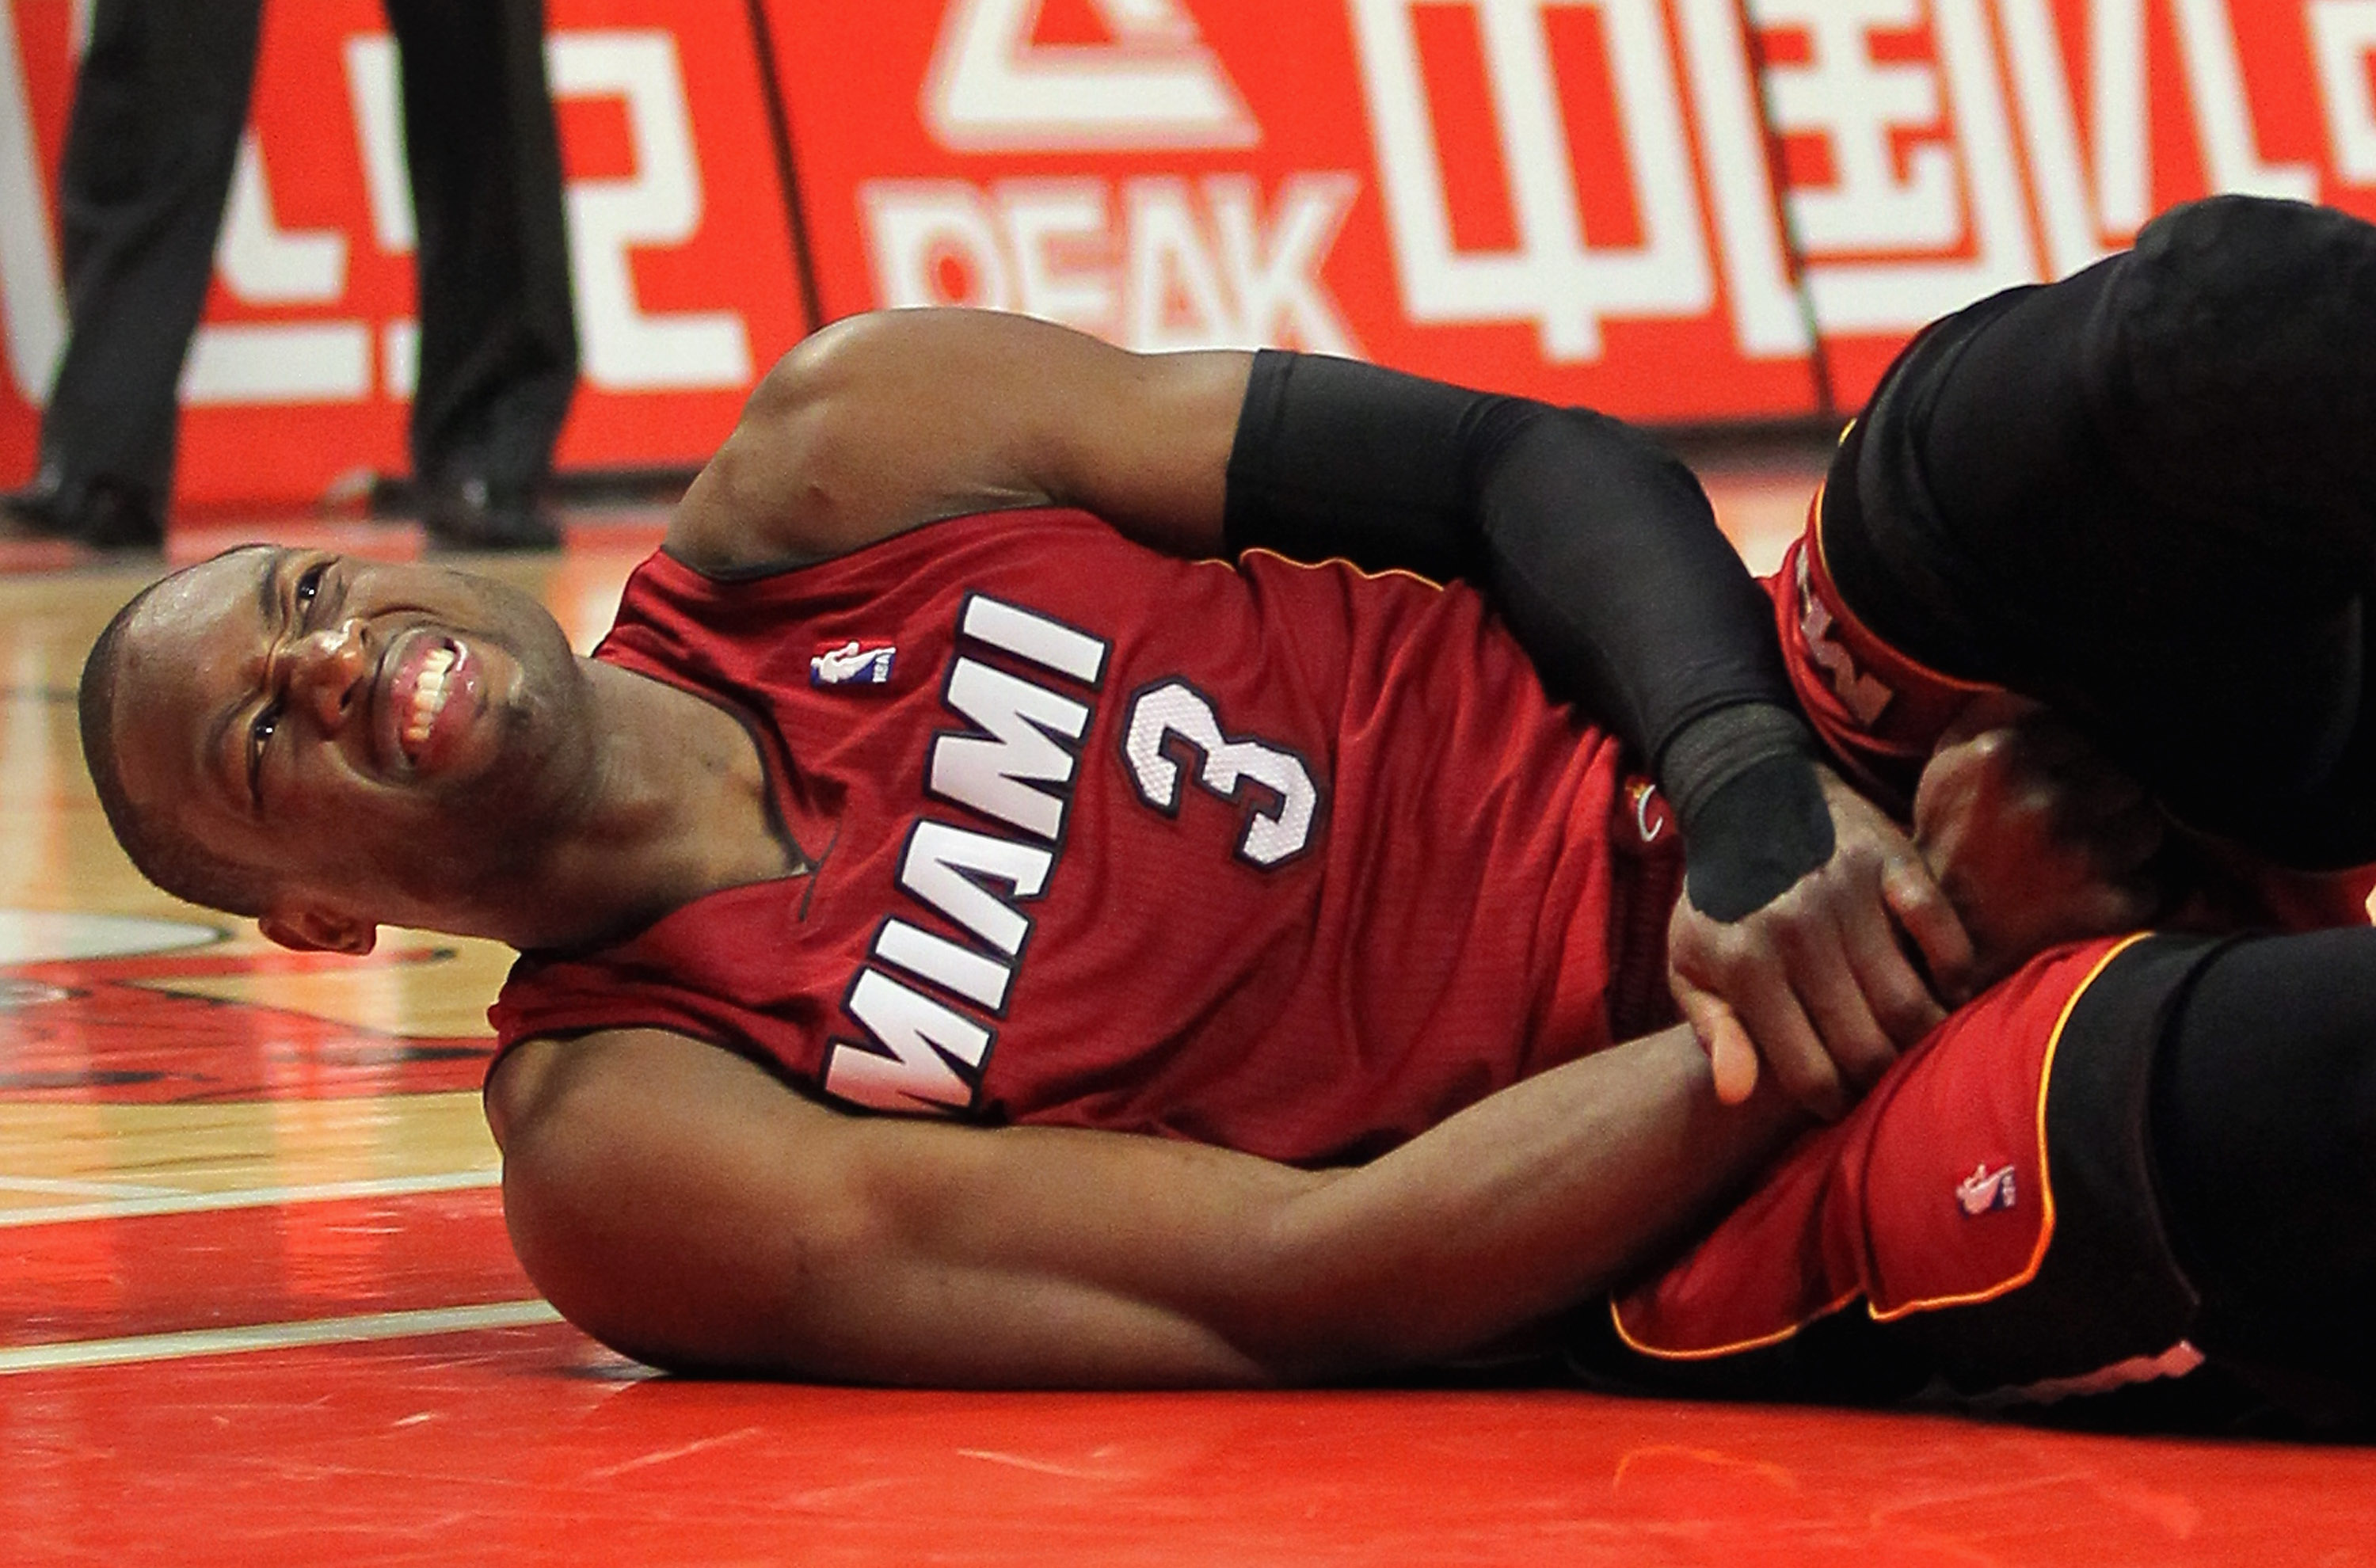 CHICAGO, IL - JANUARY 15:  Dwayne Wade #3 of the Miami Heat grimaces as he lies on the floor after being fouled by the Chicago Bulls at the United Center on January 15, 2011 in Chicago, Illinois. NOTE TO USER: User expressly acknowledges and agrees that,